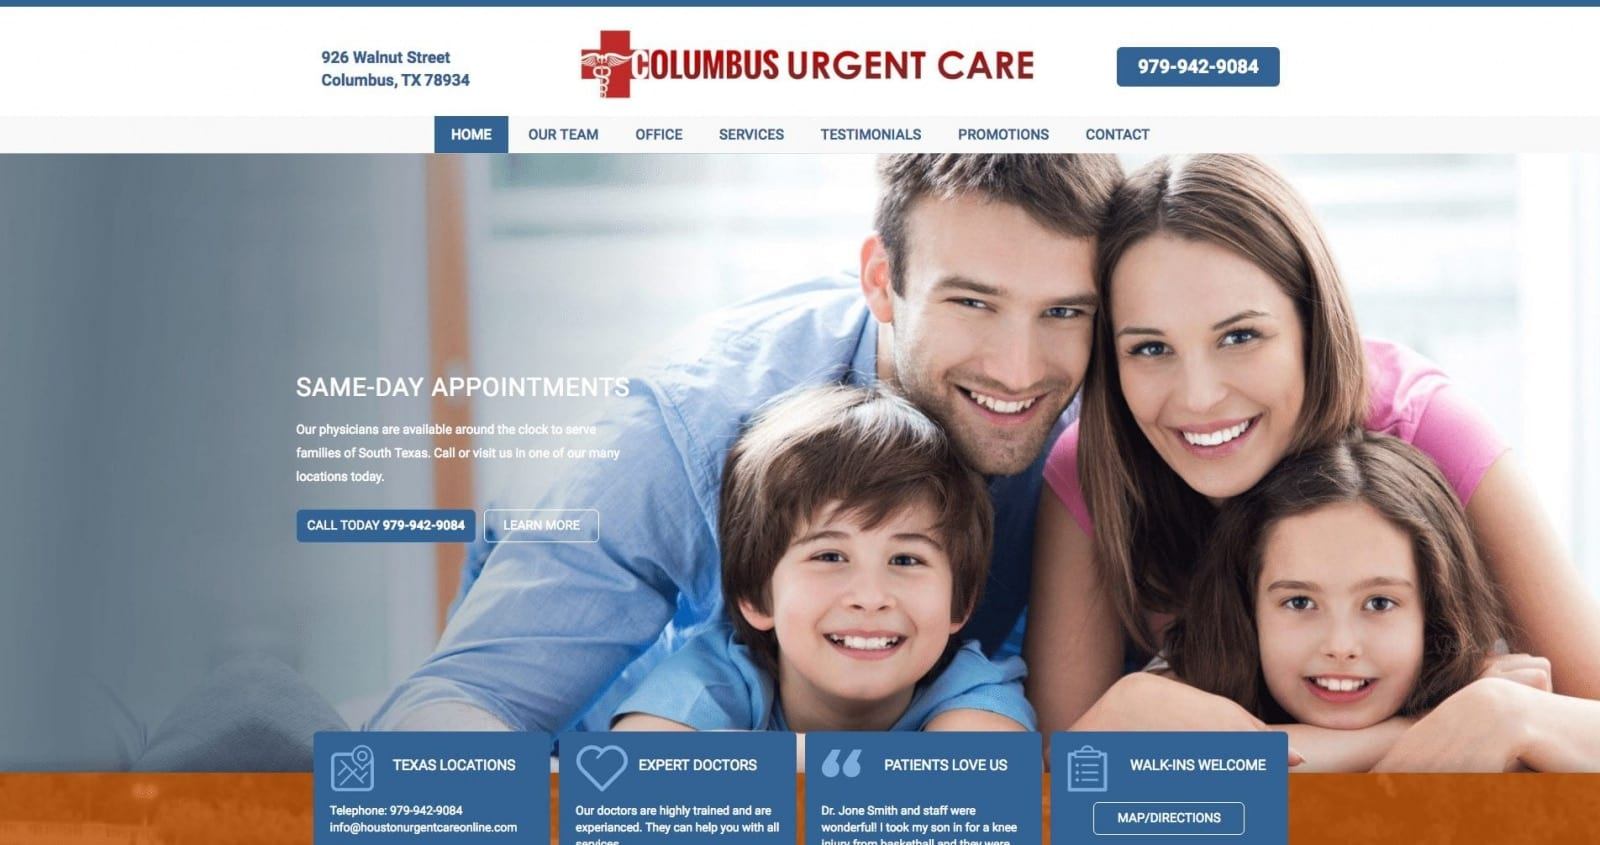 Medical Website Design for Urgent Care